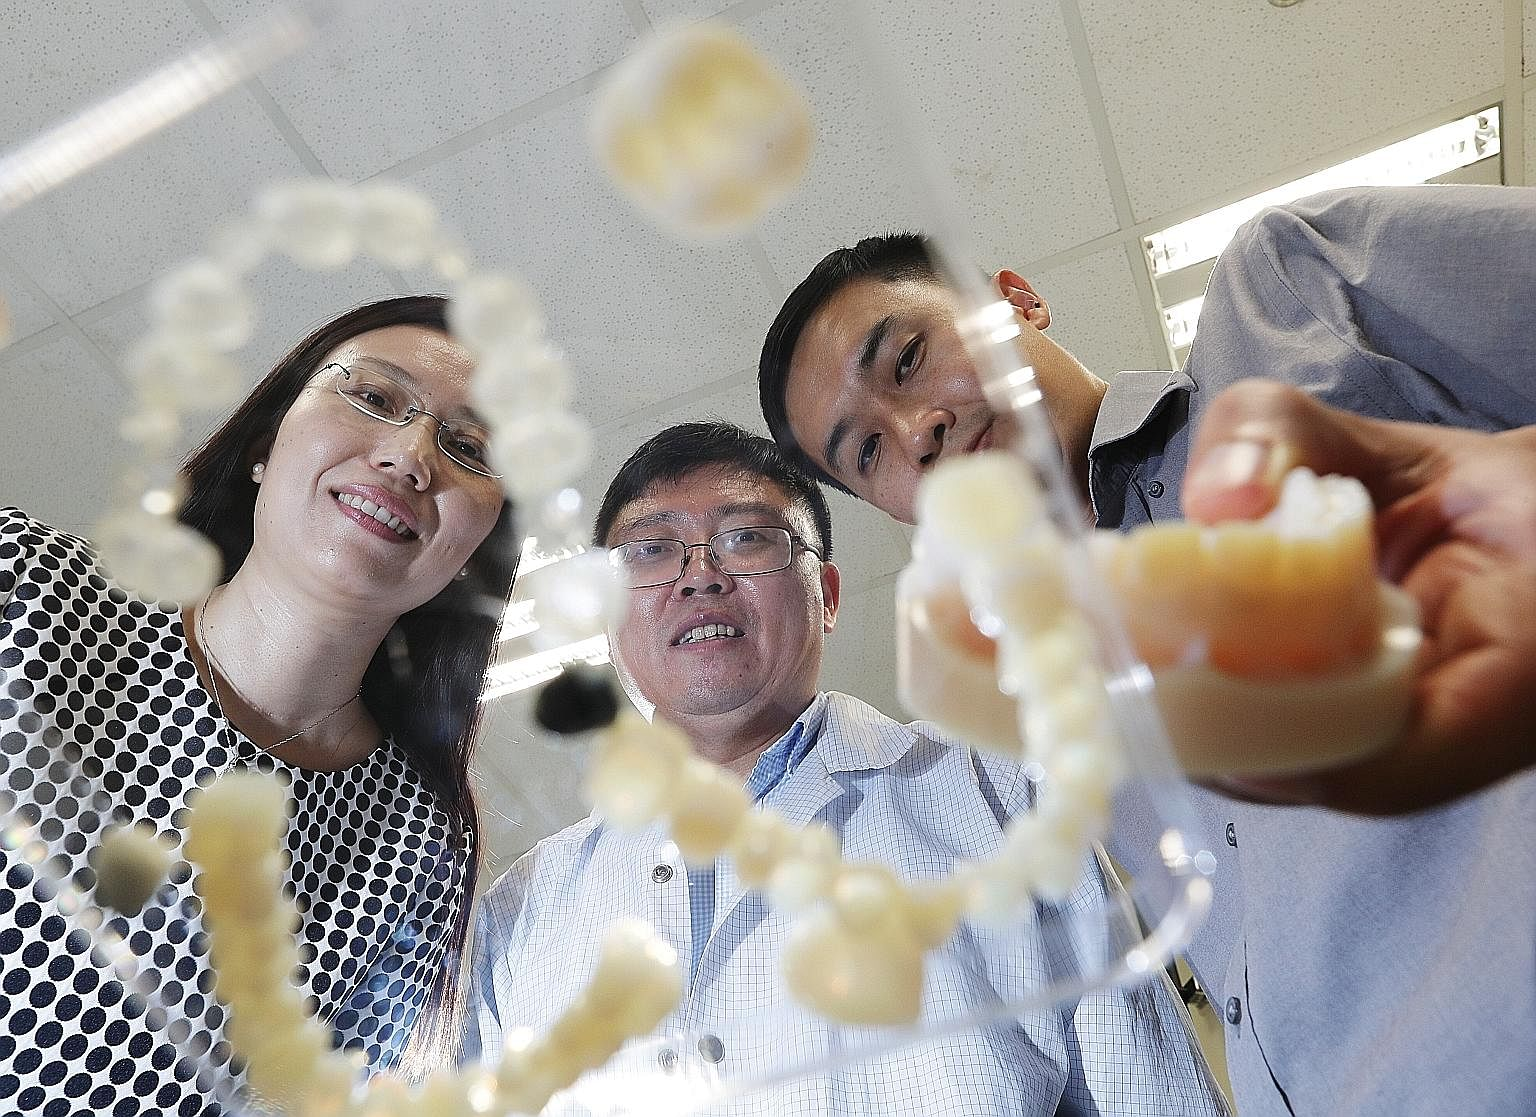 The team, including (from left) Dr Sun Lingling, Dr Zhang Guangyu and project manager Lau Joo Kiang, hopes to see its technology distributed commercially by the end of next year.